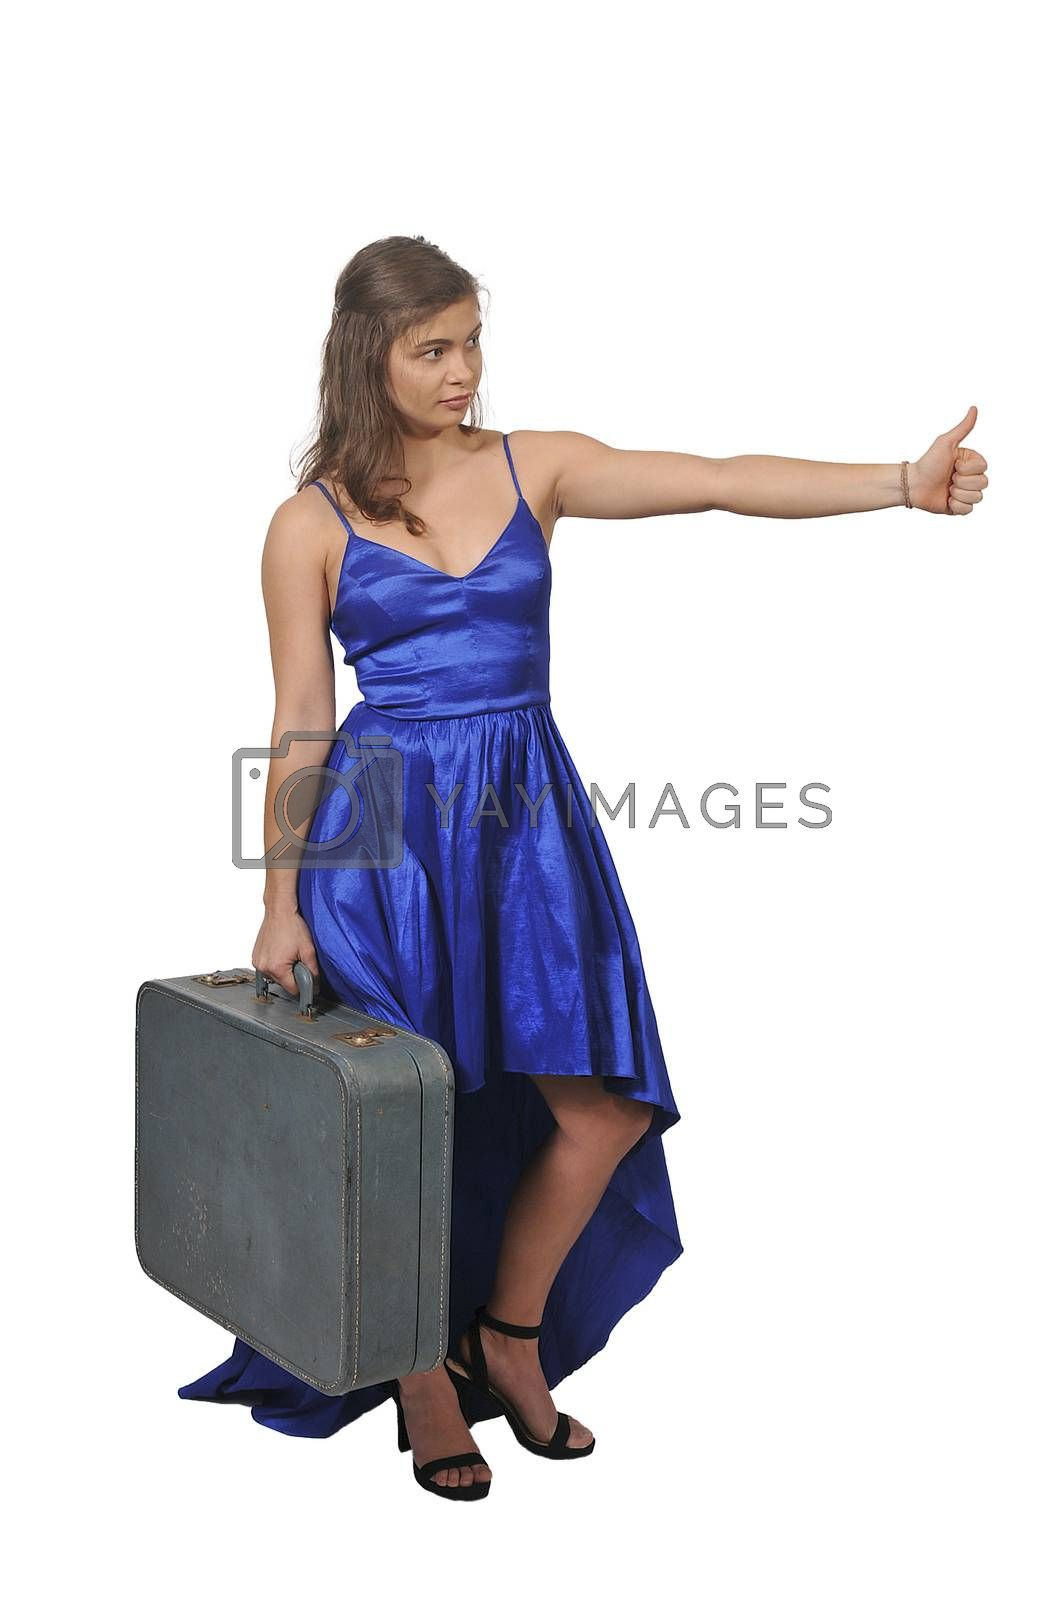 Woman on or going on vacation by robeo